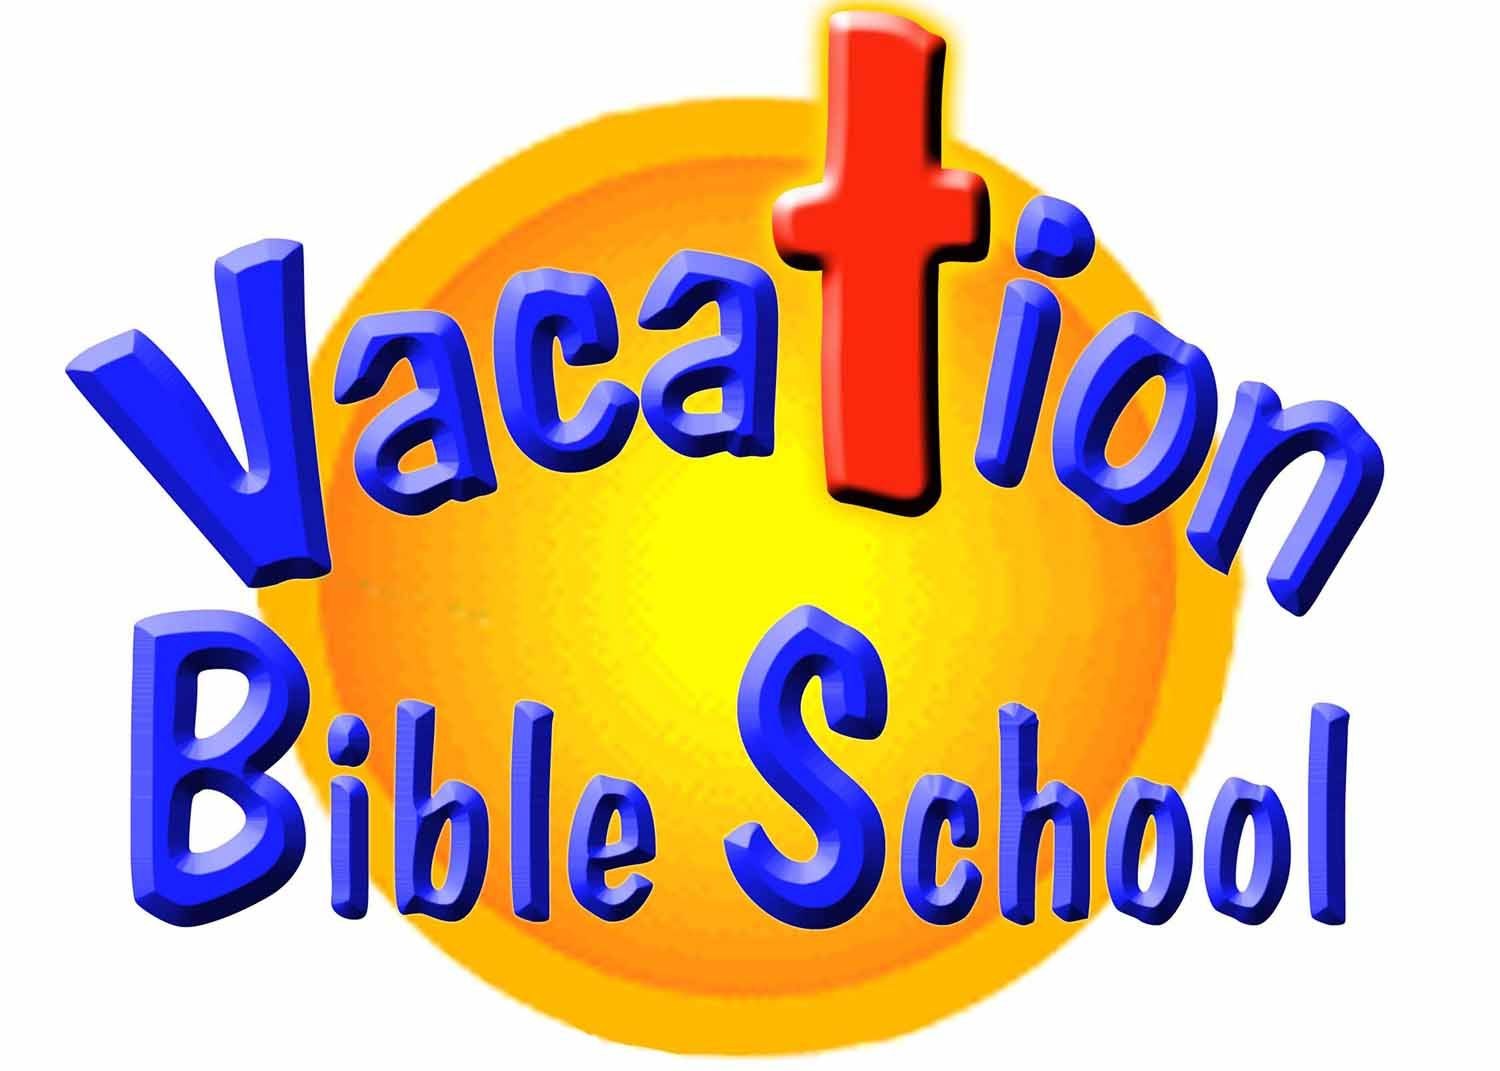 The pic/link will not take you to this site: http://www.bibleschoolresources.net/vbs/index.html  There are 2 different printable VBS on this site as well as an idea for ladies day as well as teaching methods and motivators for children...seems to be by members of the church and uses KJV and NKJV.